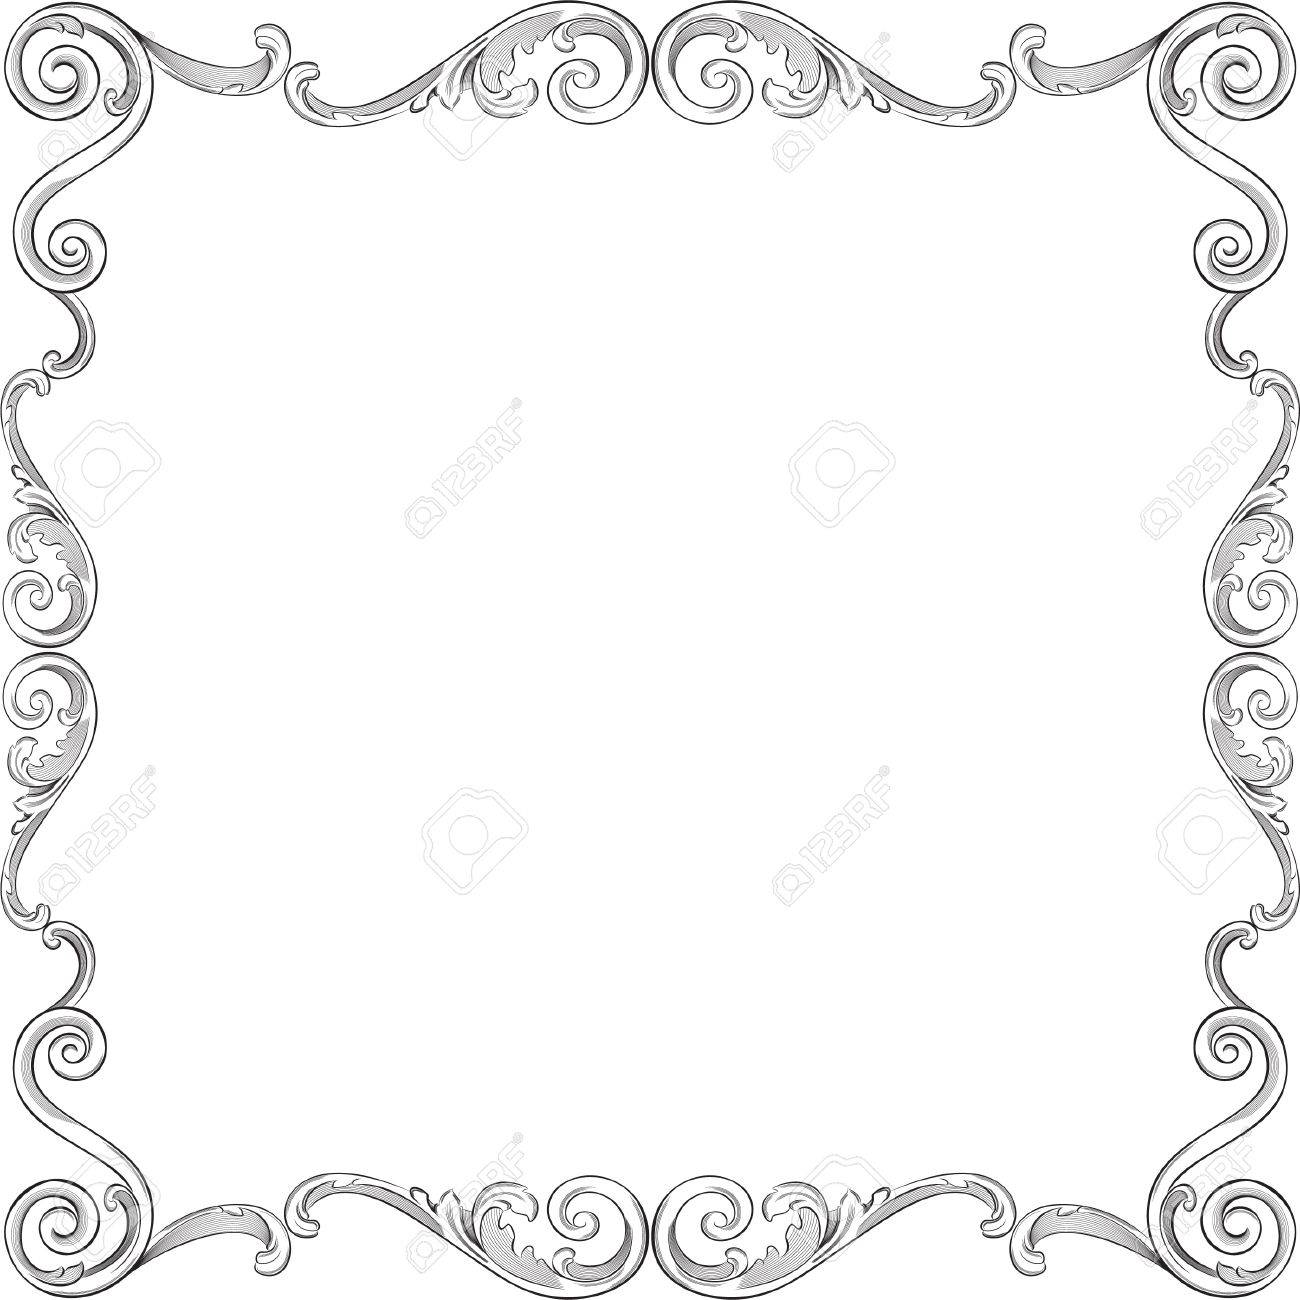 Engraving pattern of nice frame